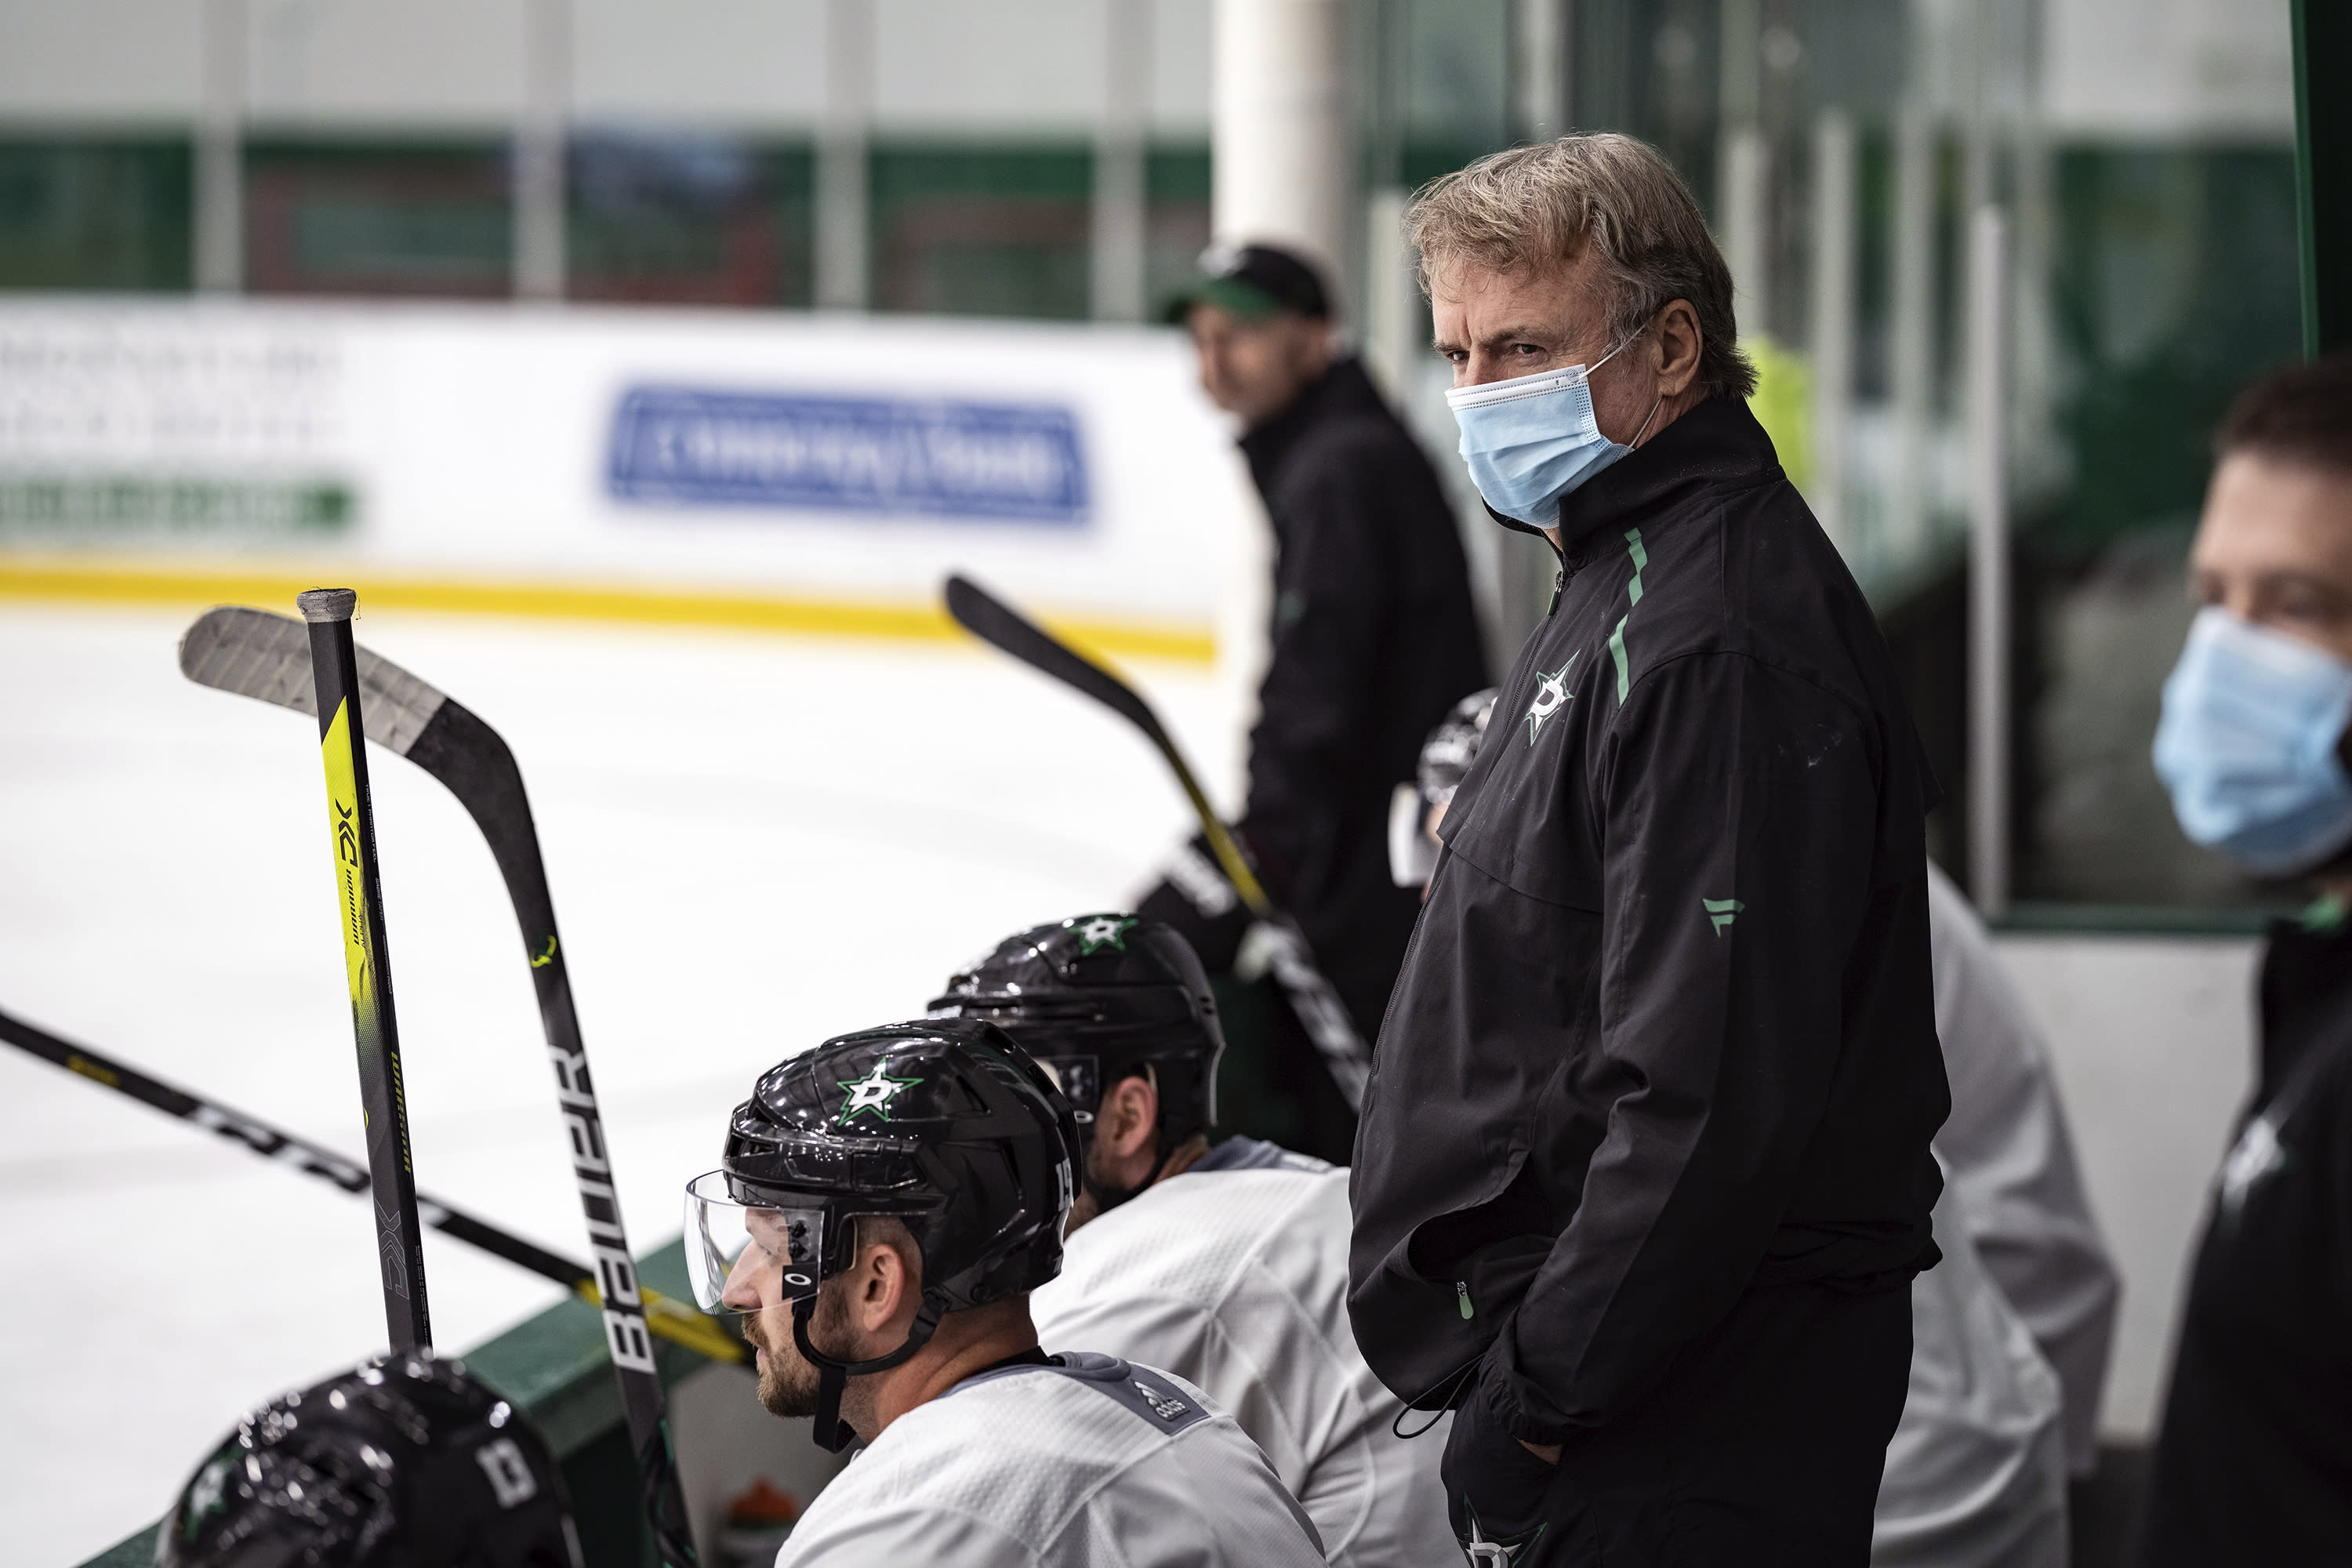 In this photo provided by the Dallas Stars NHL hockey team, interim head coach Rick Bowness watches practice in Frisco, Texas, Tuesday, July 14, 2020. Bowness, 65, coached from behind the bench the first couple of days of Dallas Stars training camp before lacing up his skates and getting on the ice. Montreal's 60-year-old Claude Julien, Edmonton's 58-year-old Dave Tippett and others are confident in the NHL's protocols as older, more at-risk people during the COVID-19 pandemic. (Jeff Toates/Dallas Stars via AP)